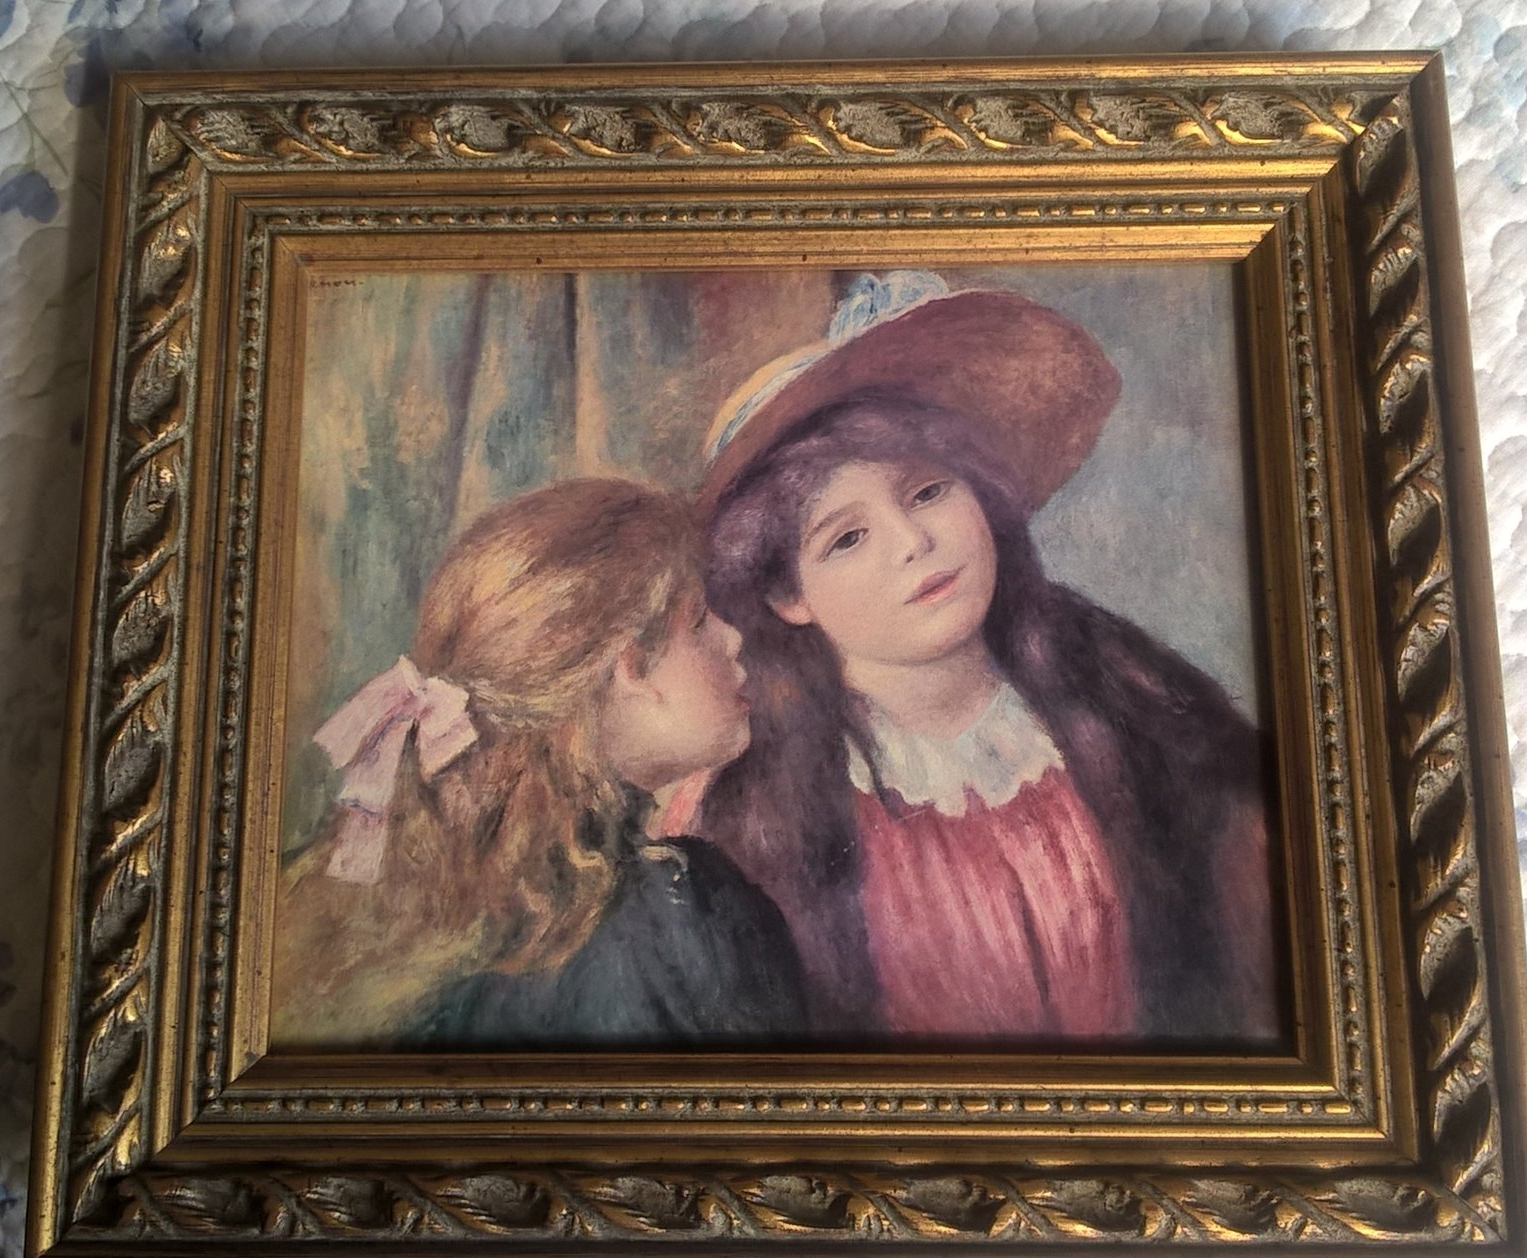 Renoir's Portrait of Two Young GIrls